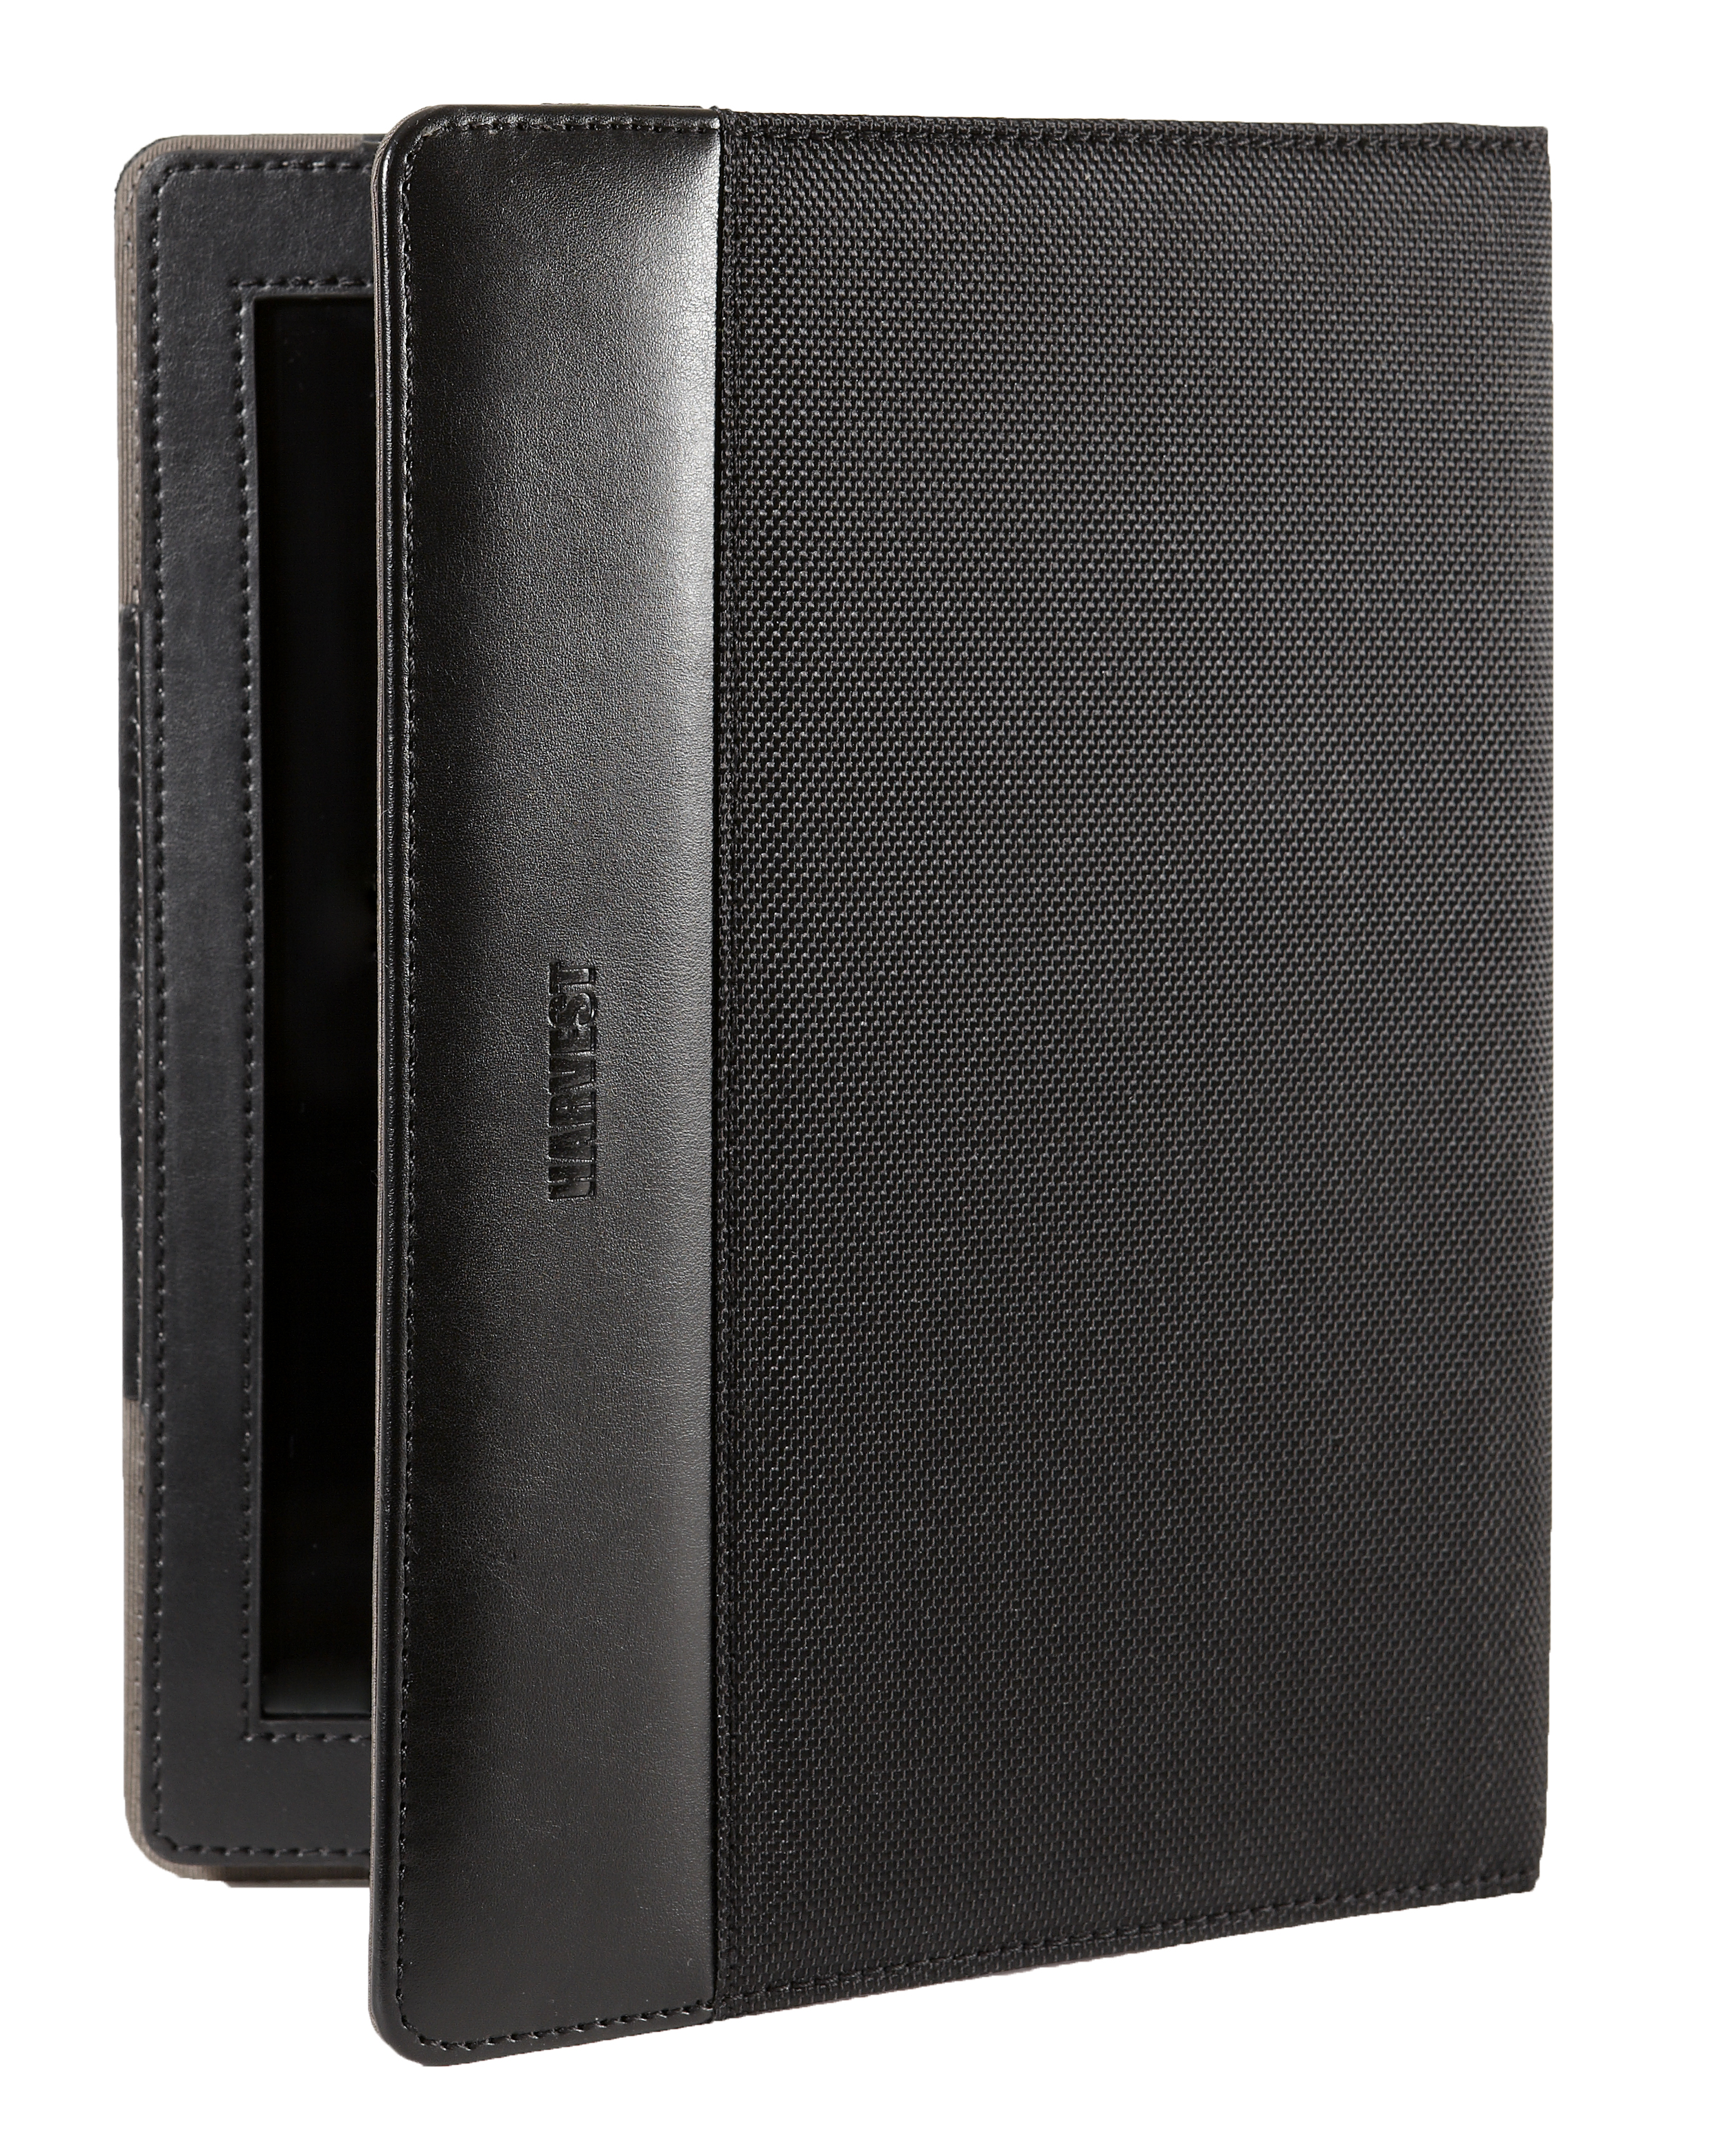 HARVEST PACIFICA IPAD COVER - Accessories